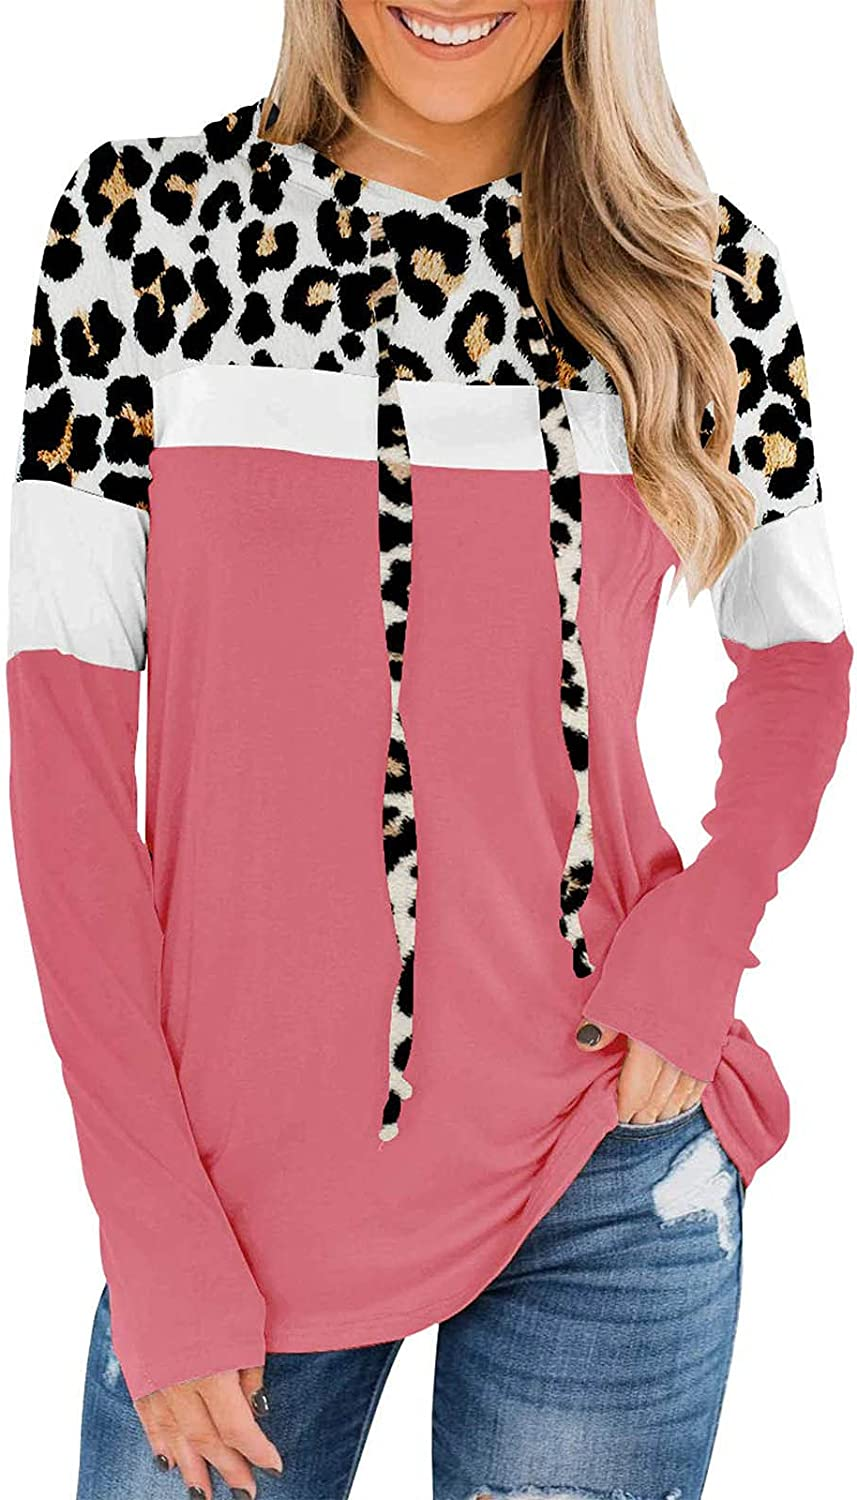 Women's Leopard Stitching Hooded Sweater Casual Lightweight Long Sleeve Blouse Ladies Crewneck Fashion Pullover Tops